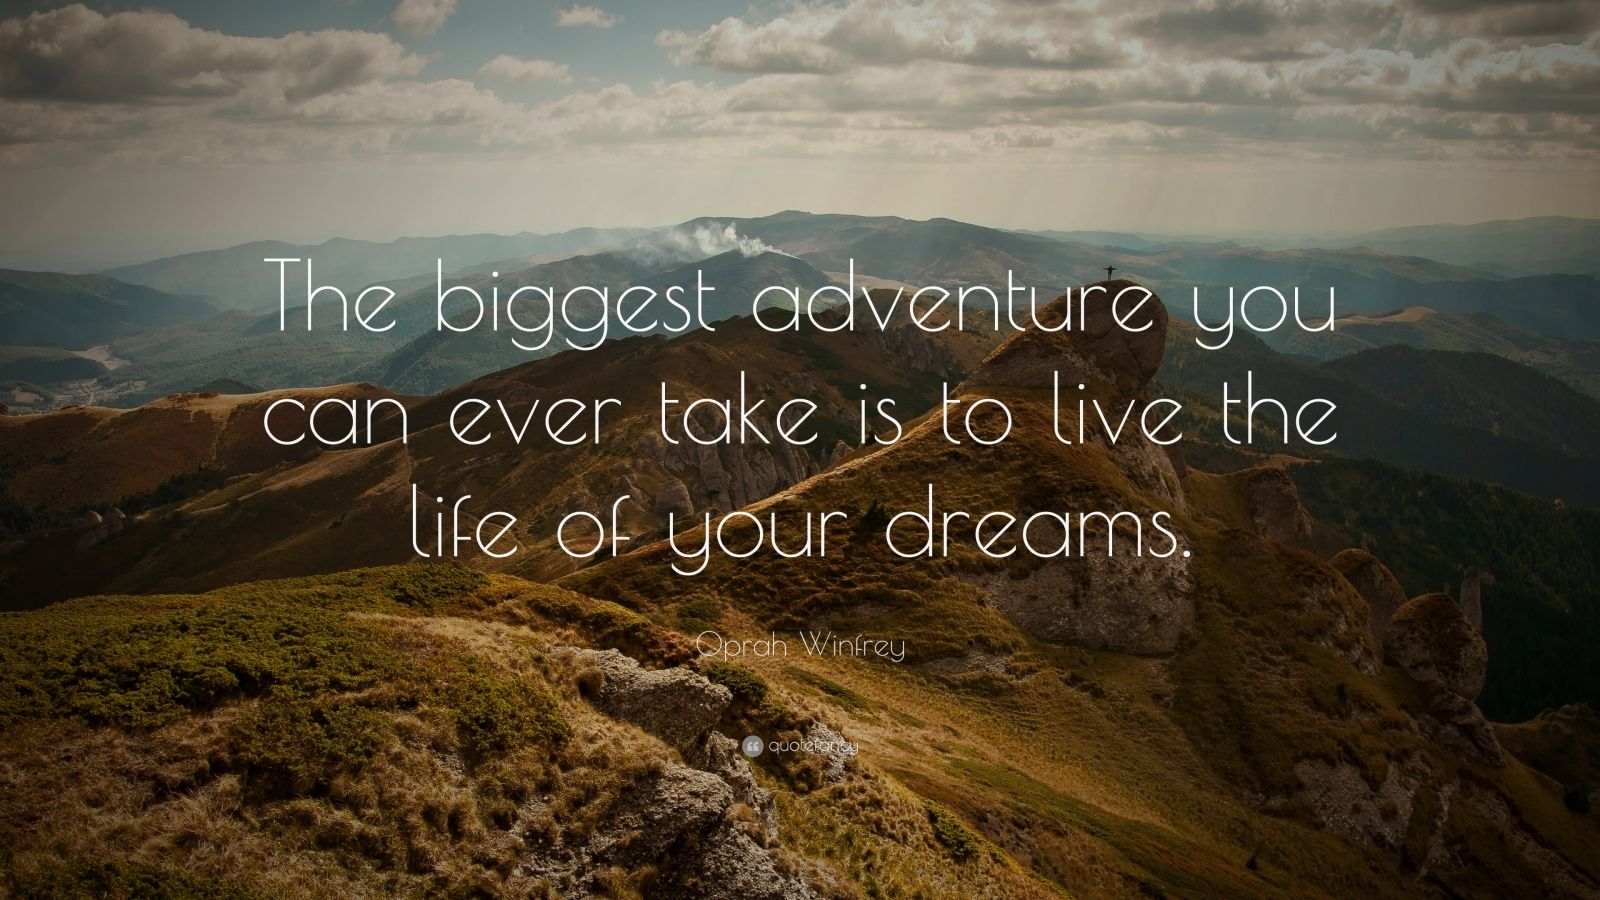 """Oprah Winfrey Quote: """"The biggest adventure you can ever take is to live the life of your dreams."""""""